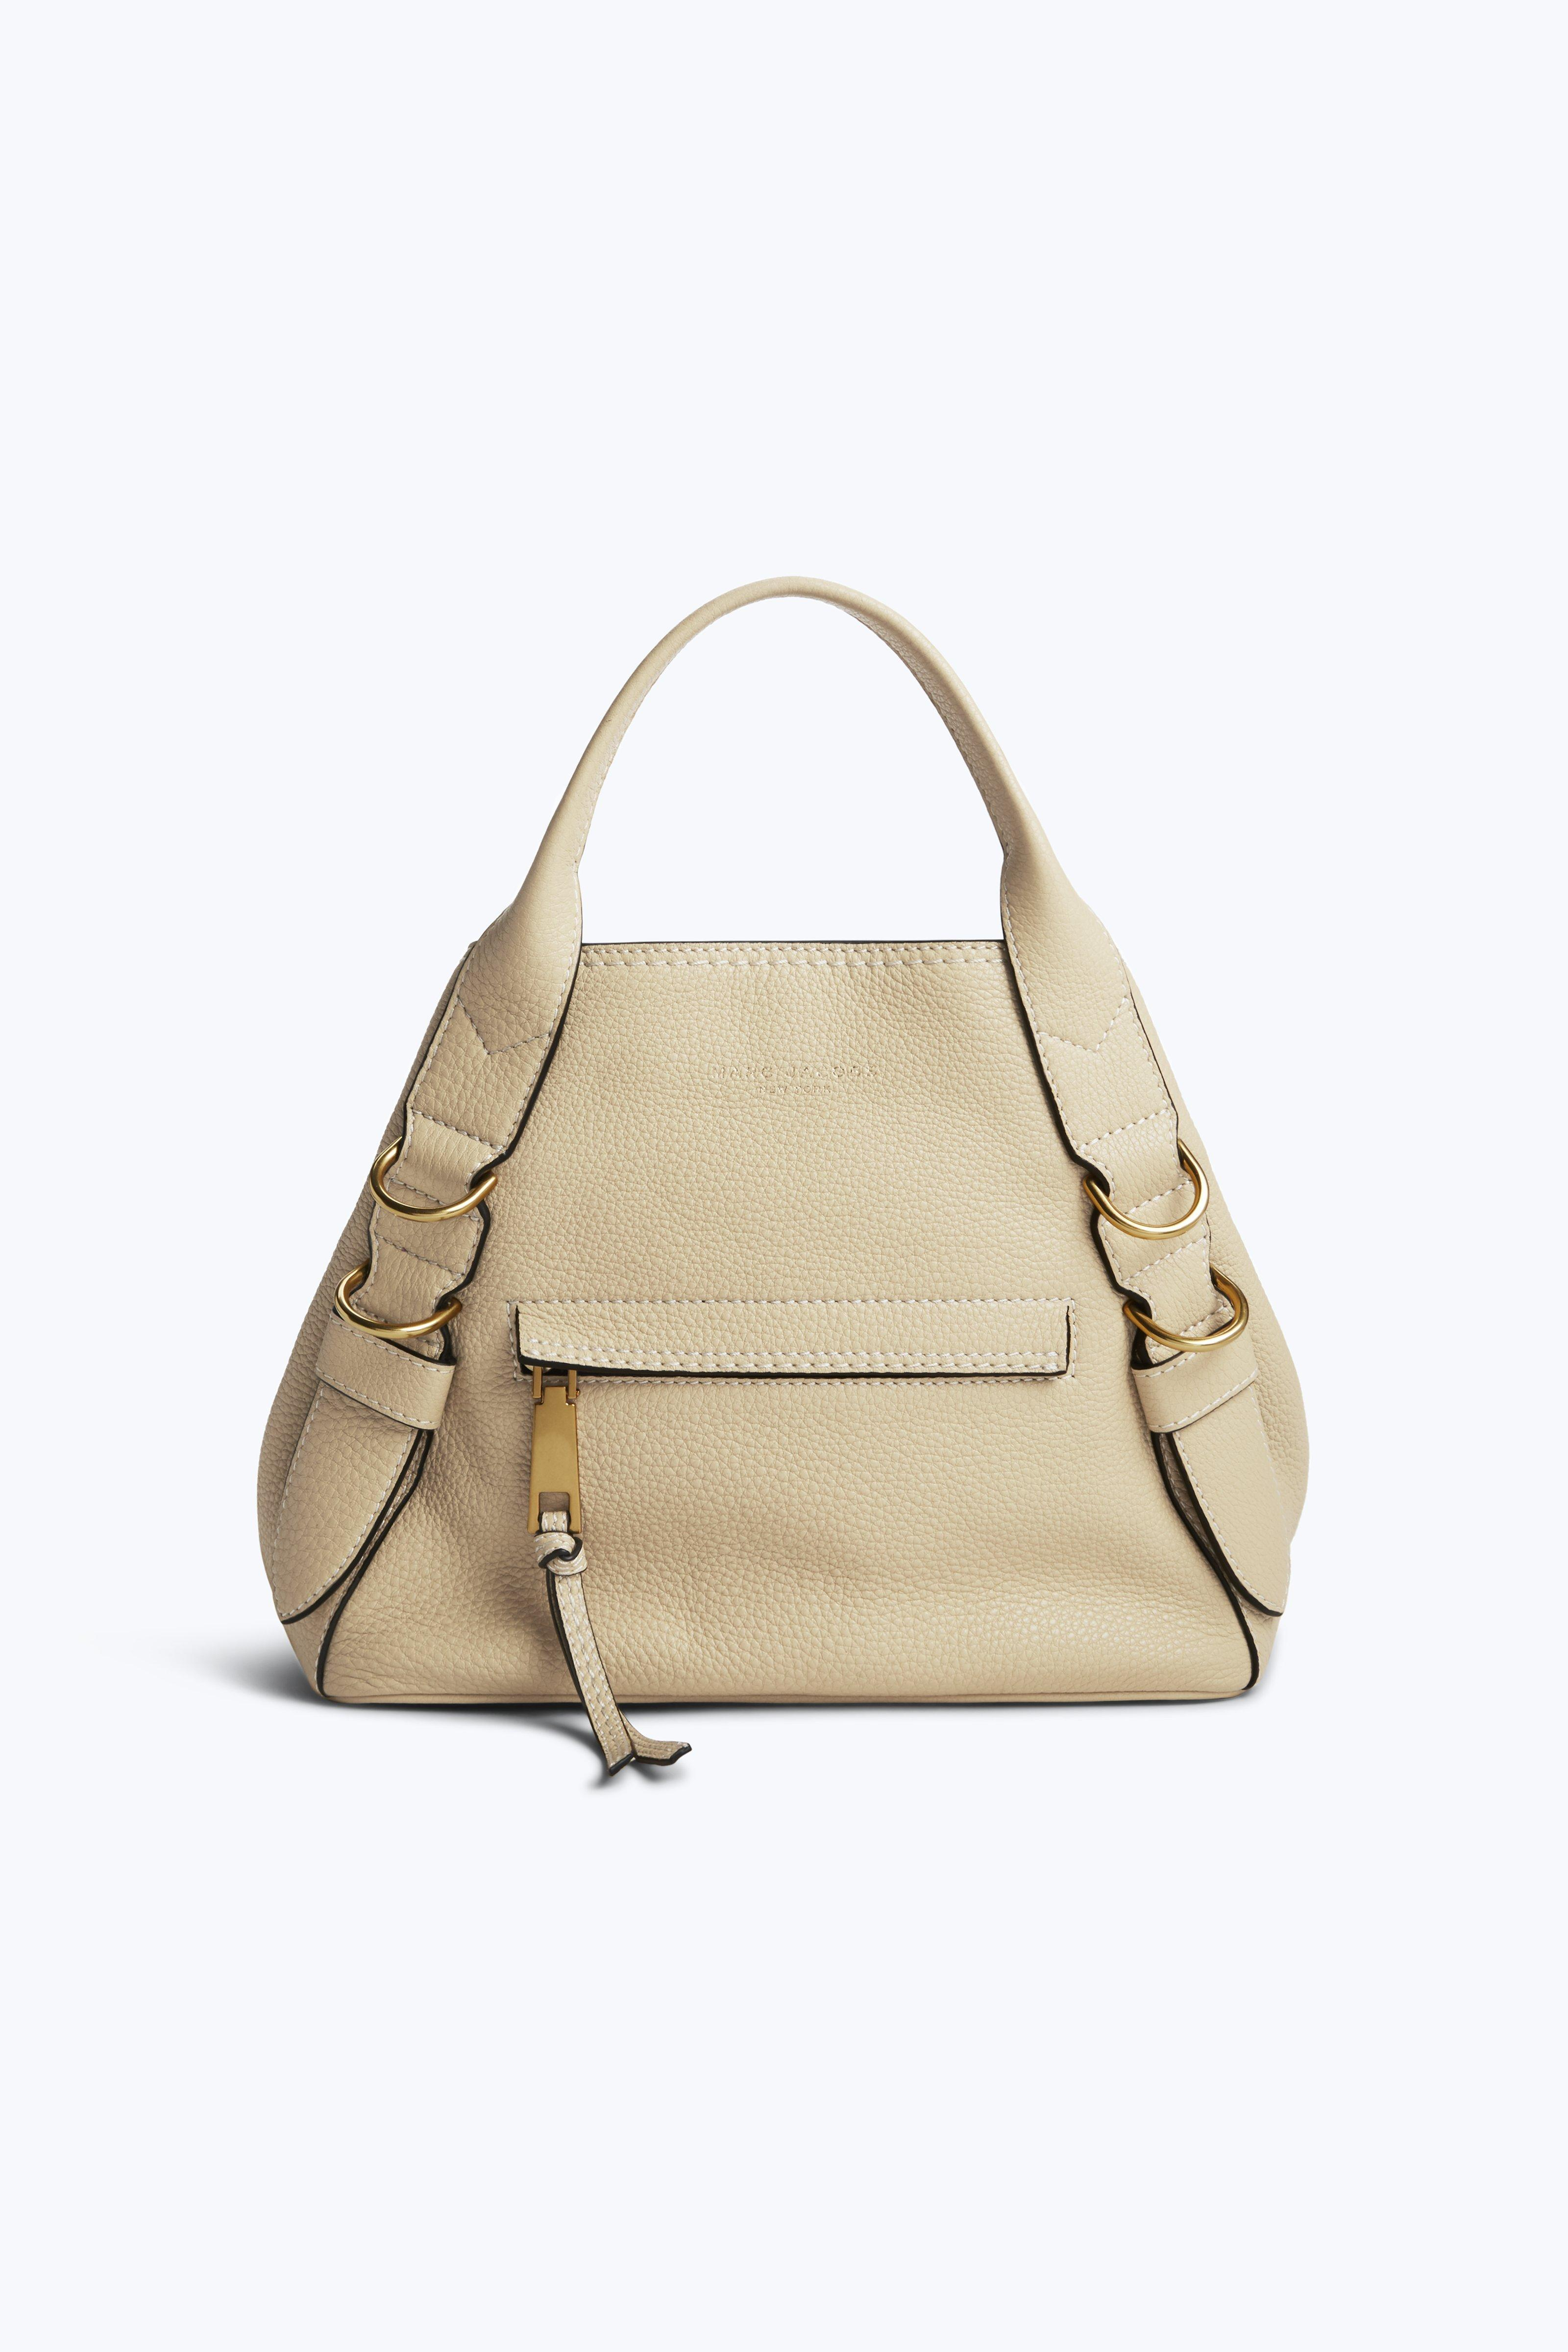 Marc Jacobs The Mini Anchor In Buff